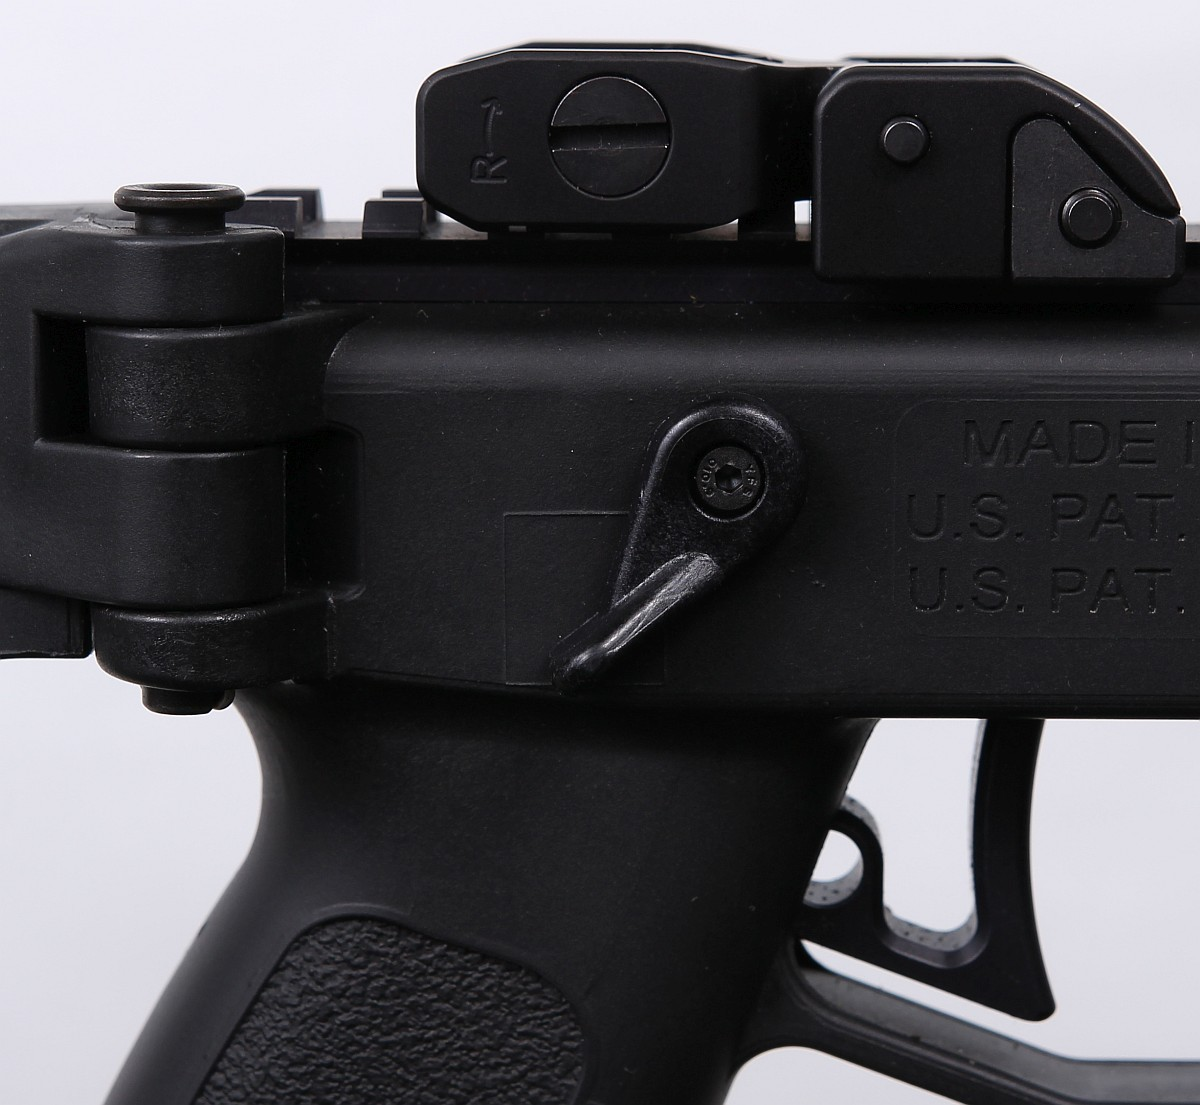 Kriss Vector Review | The Hunting Gear Guy